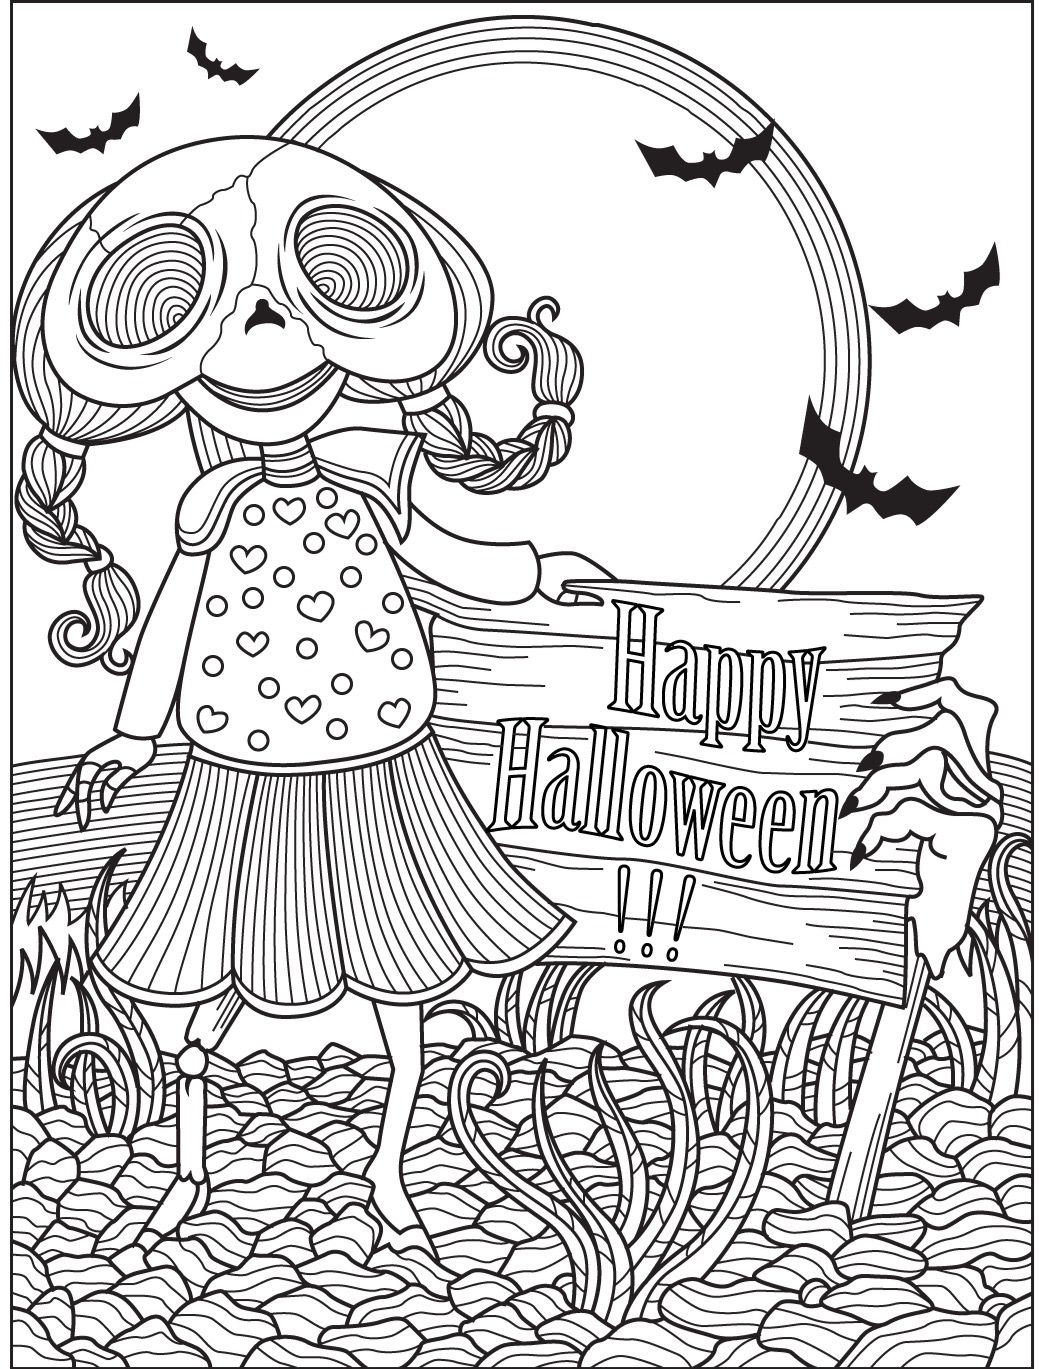 Halloween Coloring Page Colorish Free Coloring App For Adults By Goodsofttech Coloring Books Halloween Coloring Pages Coloring Pages